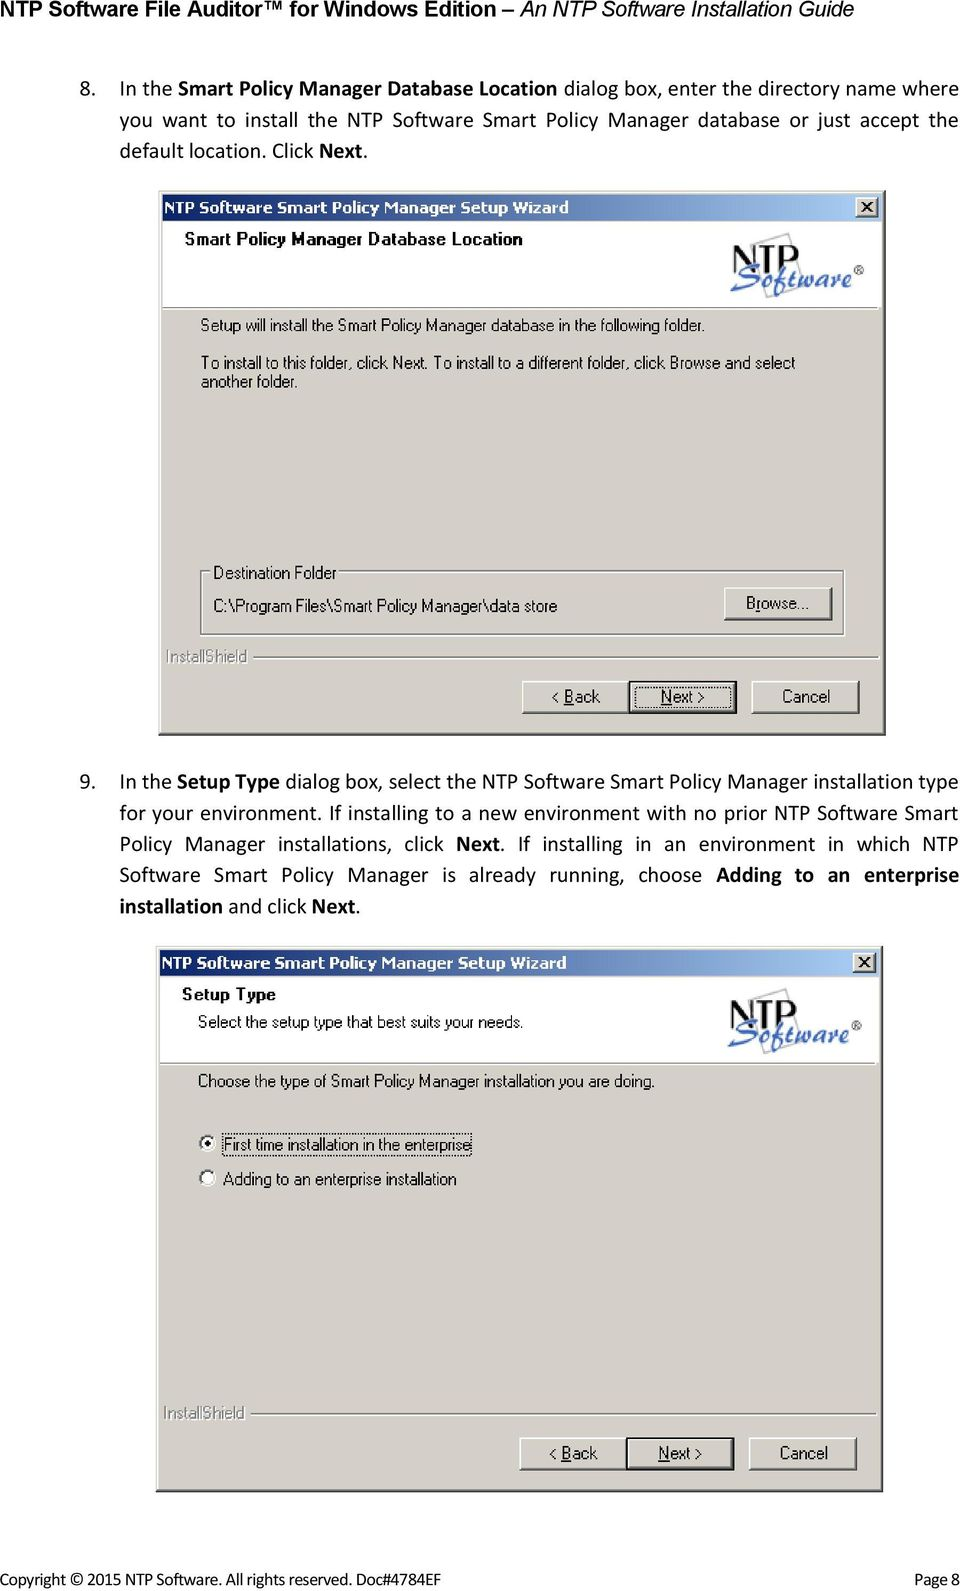 If installing to a new environment with no prior NTP Software Smart Policy Manager installations, click Next.